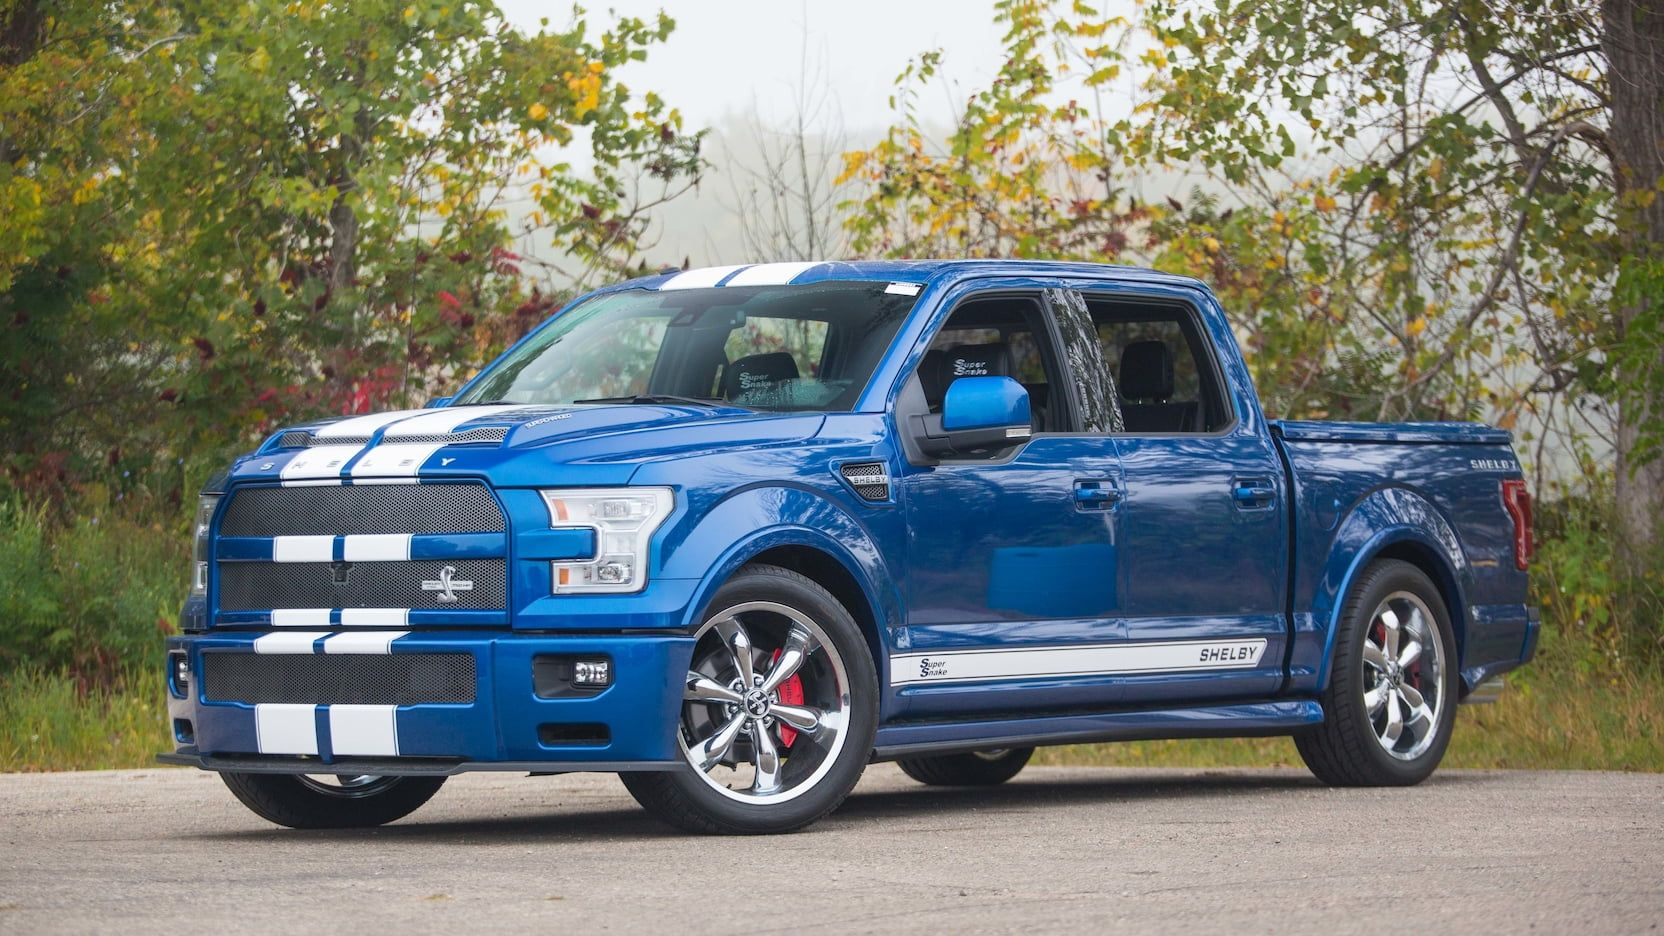 Ford Truck Shelby >> 2017 Ford F150 Shelby Super Snake Pickup Presented As Lot S97 At